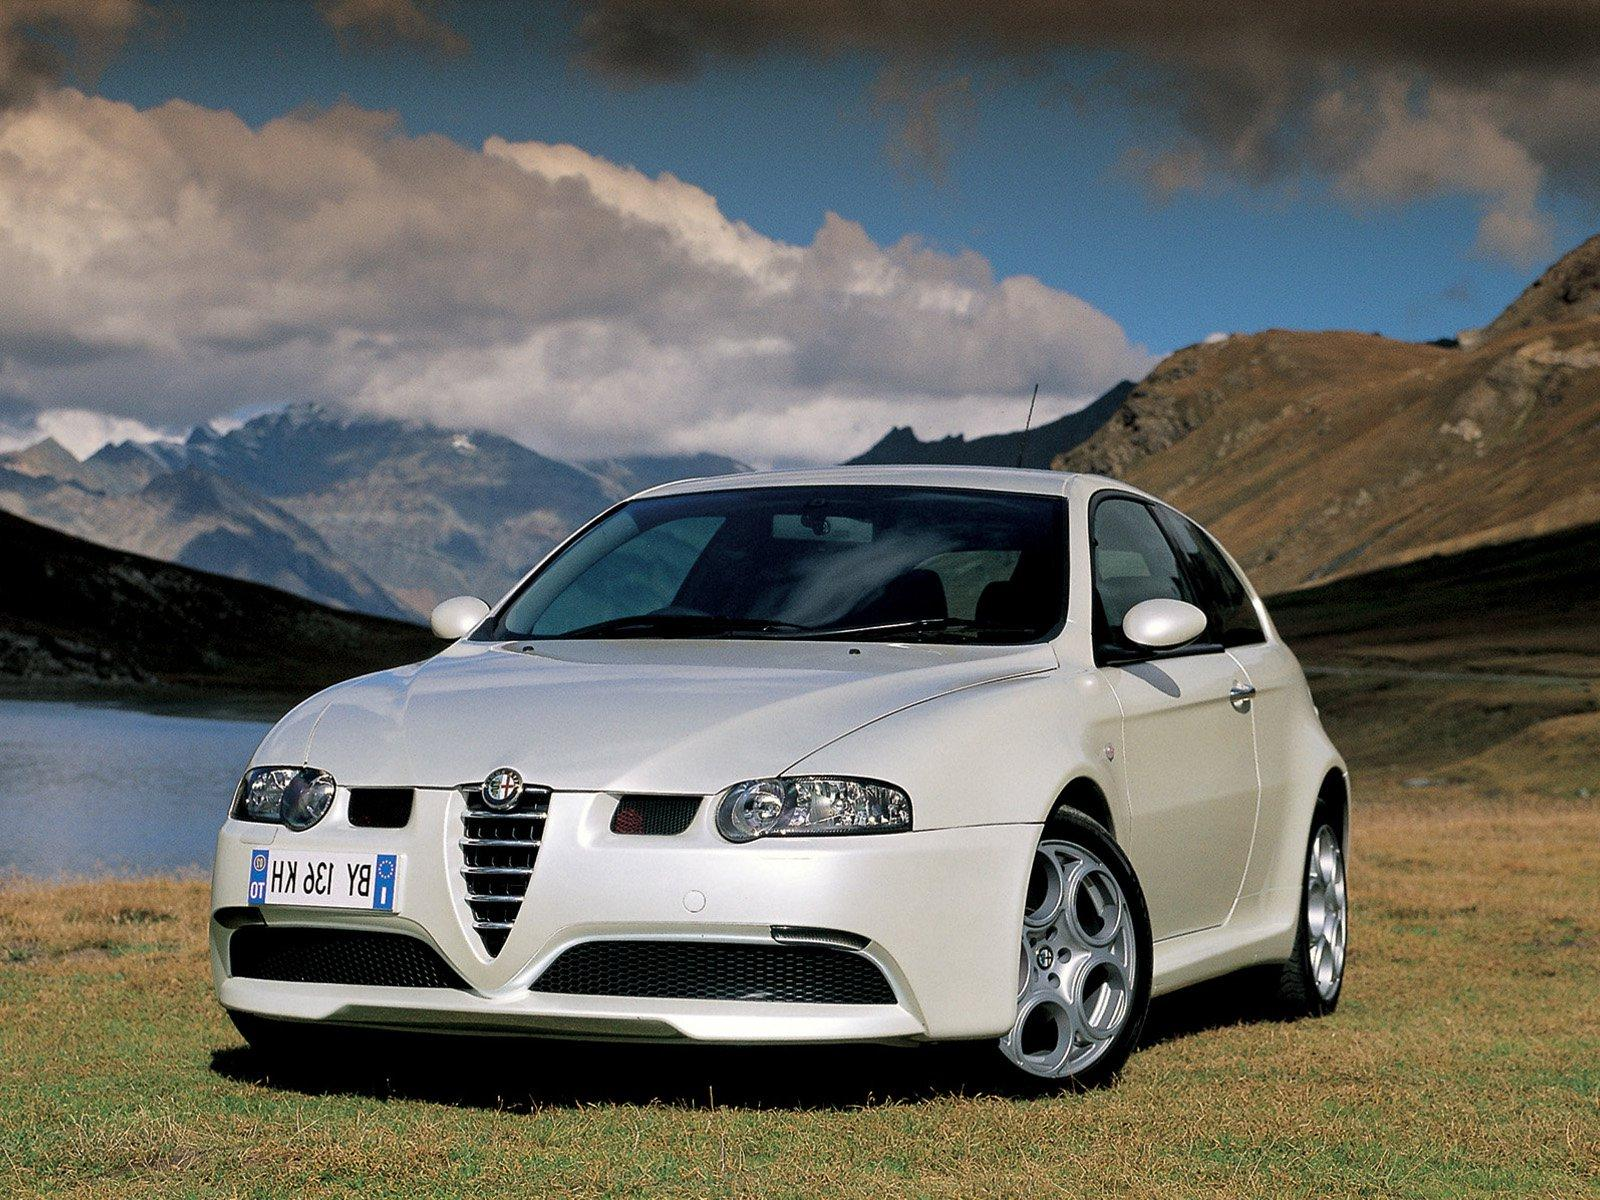 Alfa Romeo 147 GTA Wallpaper